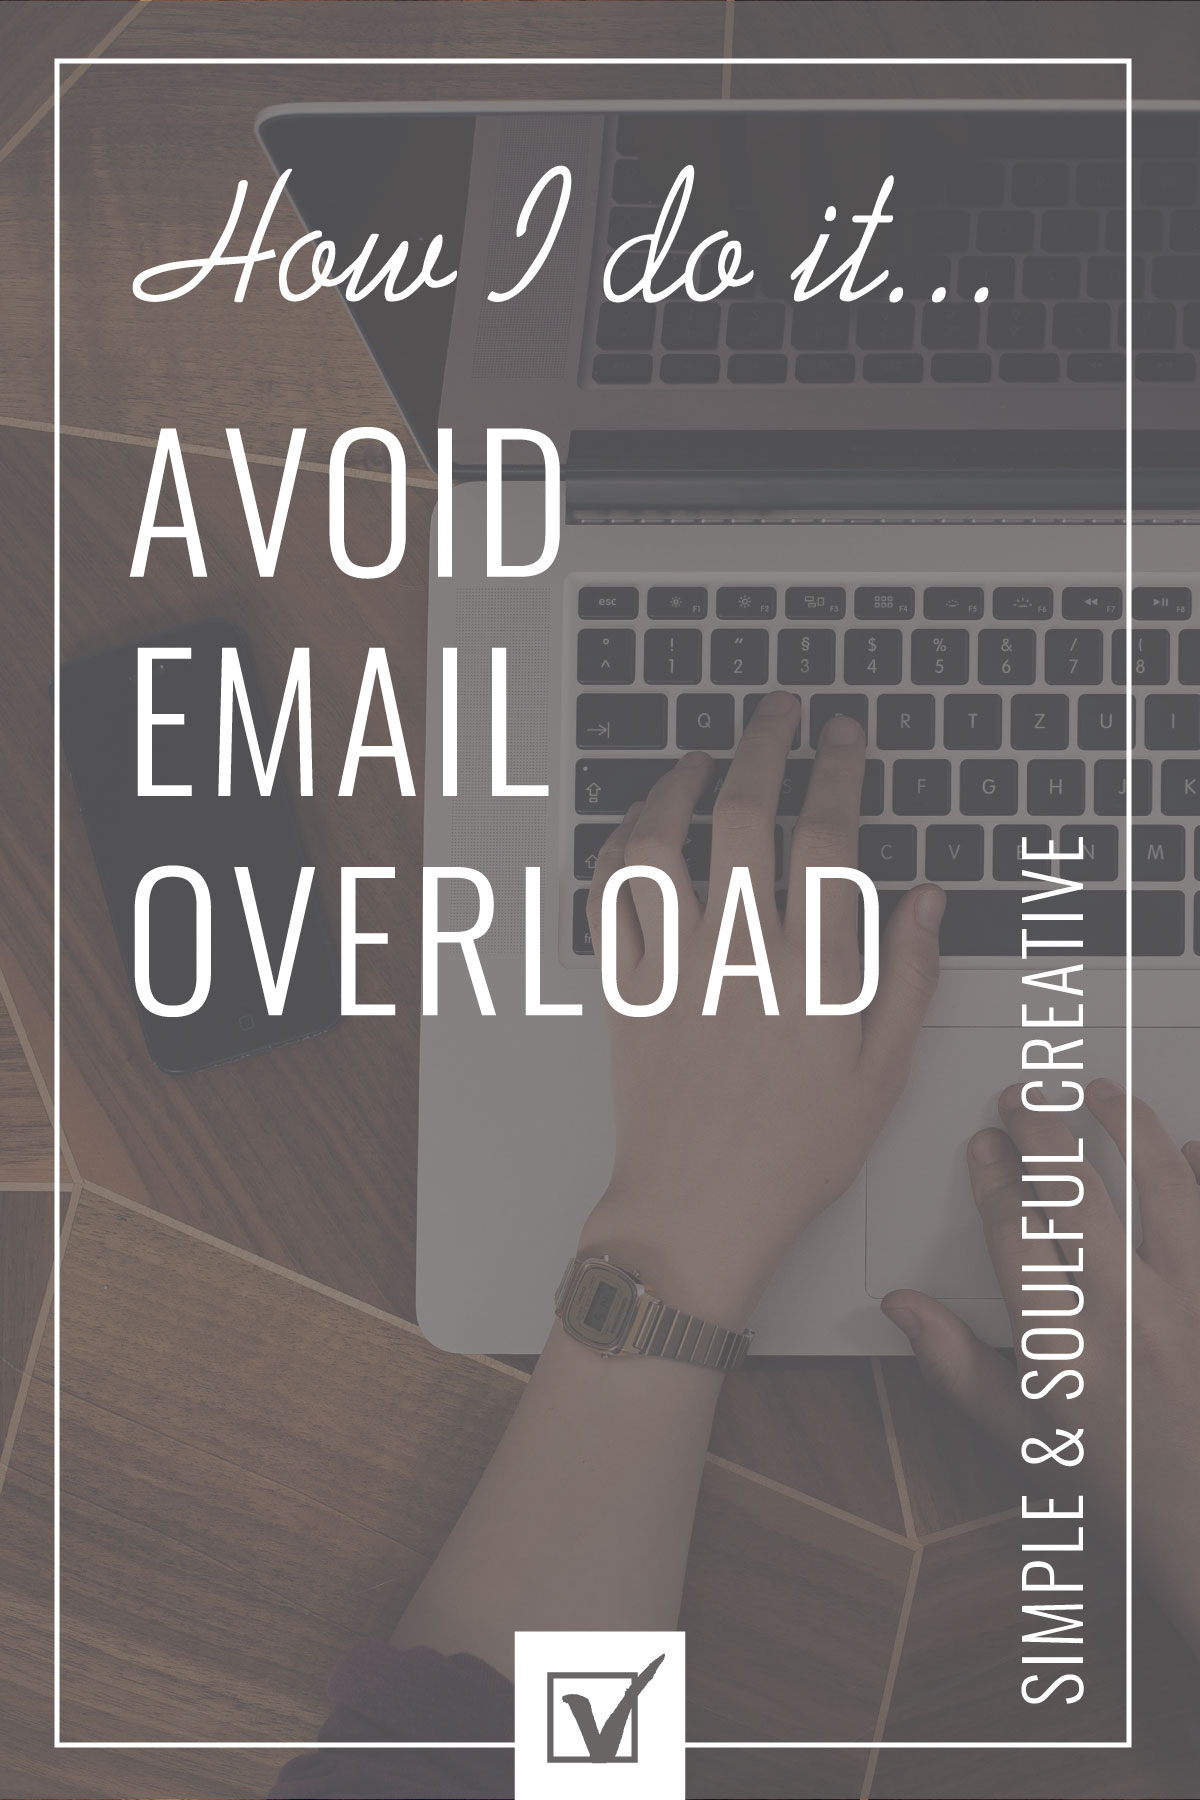 Take a peek at how I manage my Gmail inbox (video included). You'll see my system to avoid email overload with Gmail labels, email forwarding, and the tool I use to keep the newsletter avalanche contained. This guidance is for solo business owners who want a tidy email inbox, but don't know where to start.